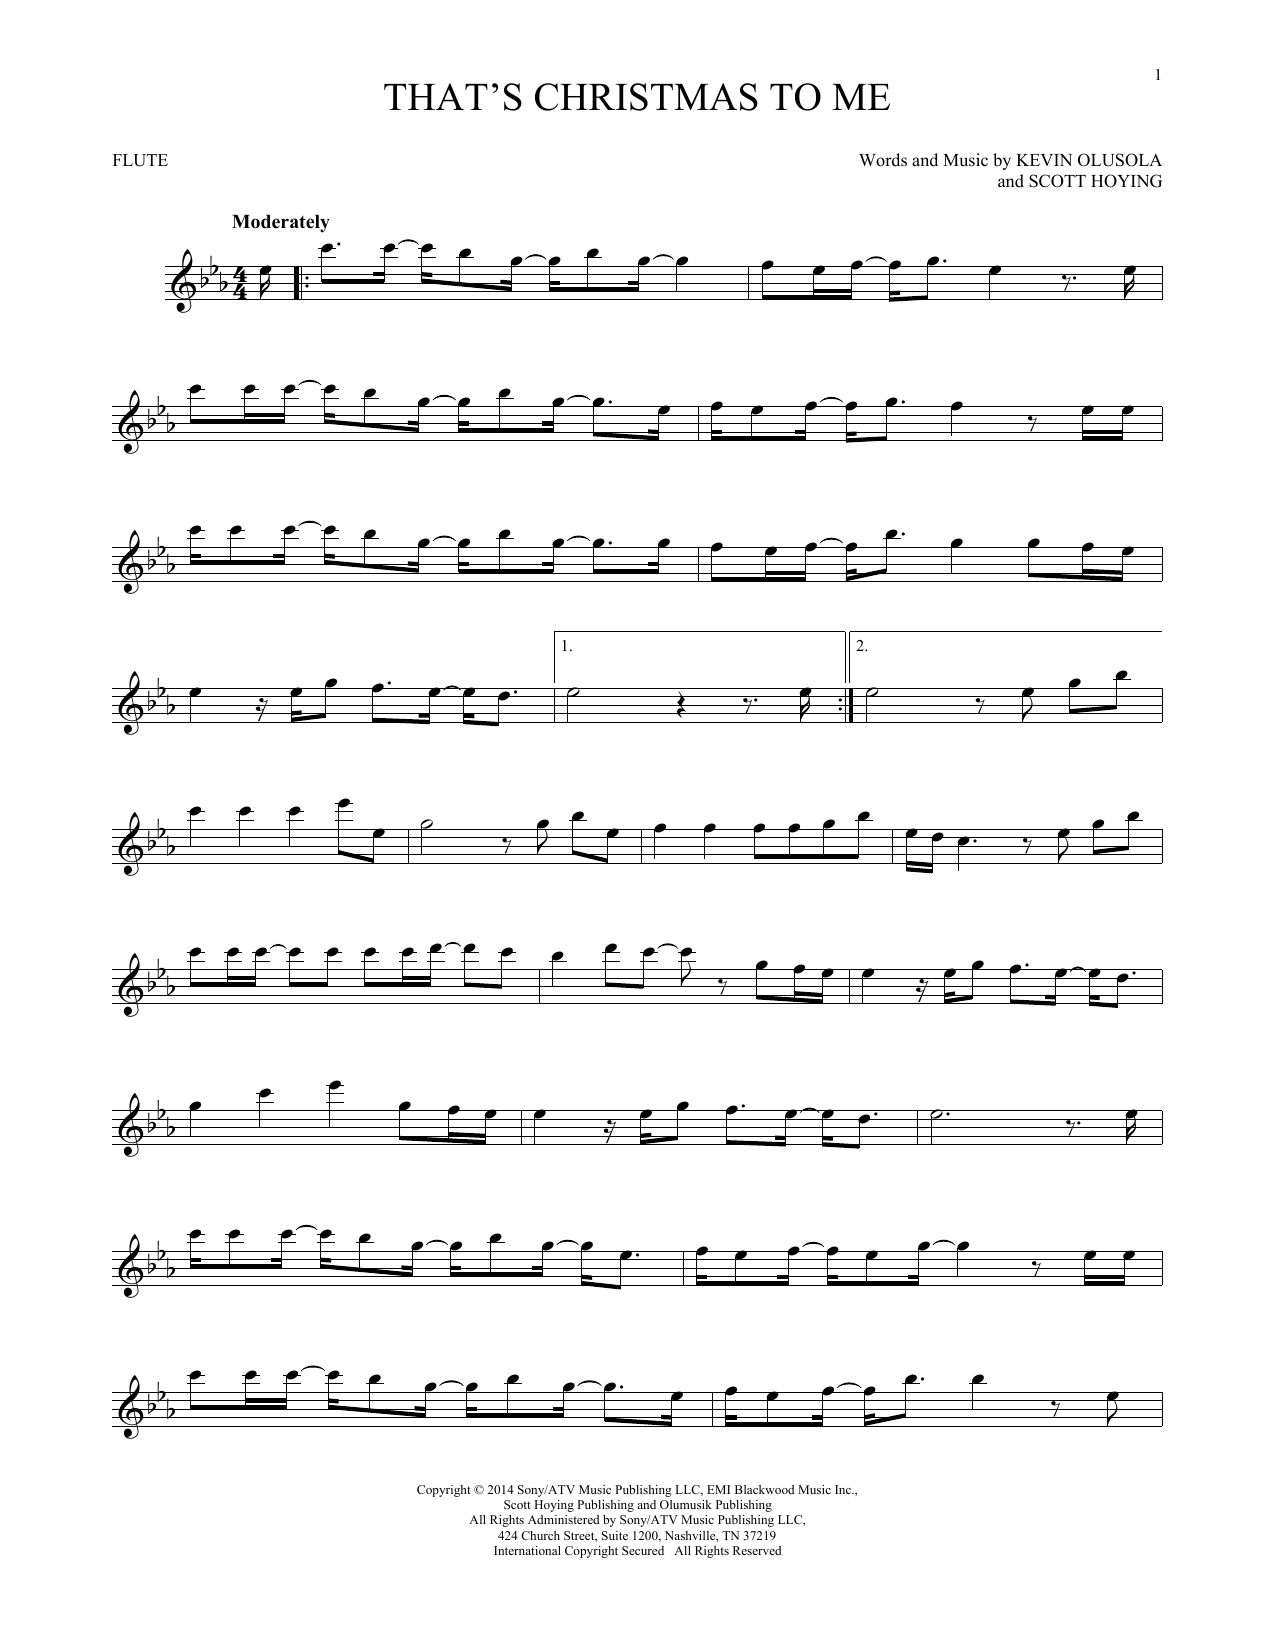 That's Christmas To Me (Flute Solo)